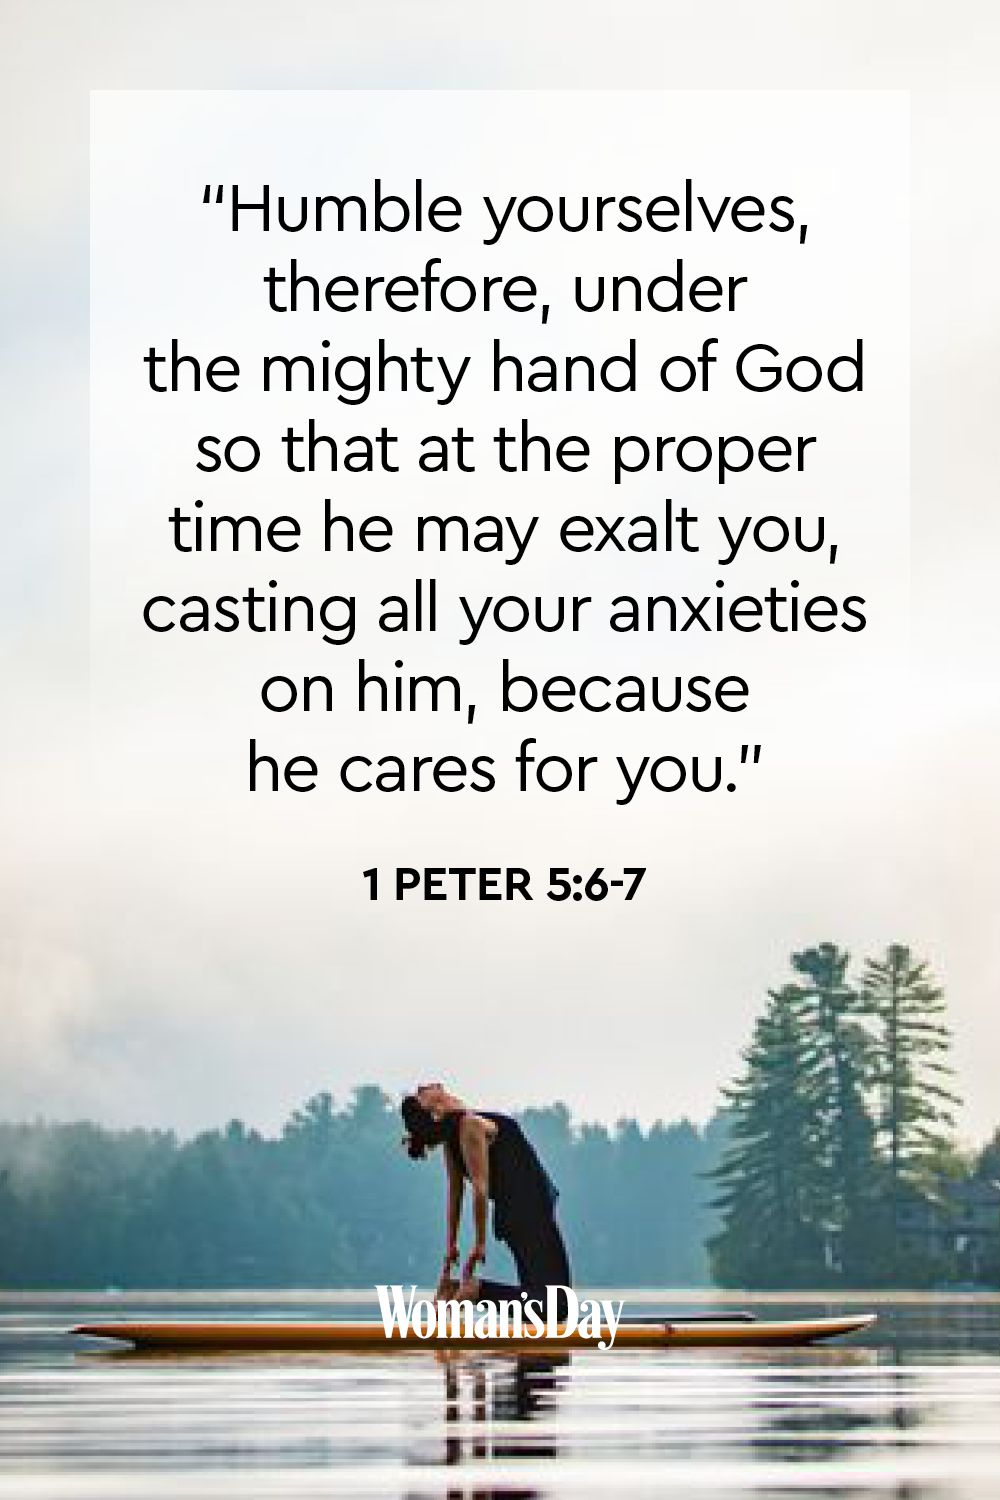 15 Bible Verses to Manage Stress – Bible Verses for Anxiety